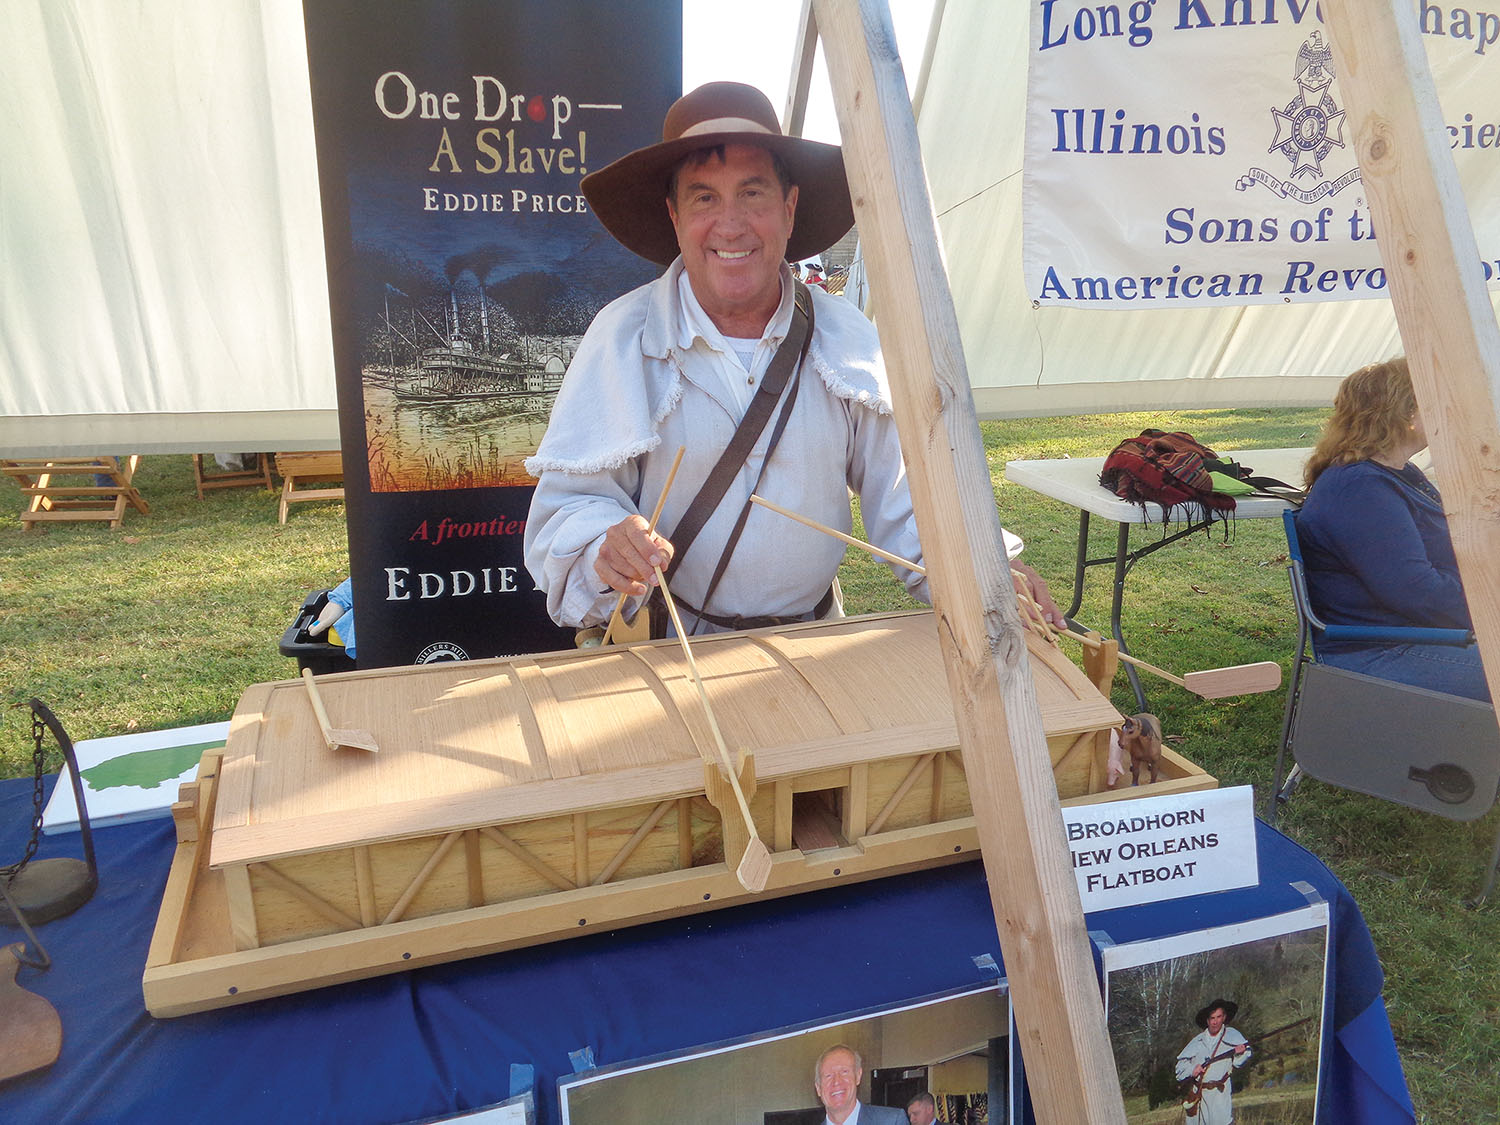 Eddie Price shows a broadhorn flatboat as part of his presentation on Kentucky's Ohio River heritage. (Photo by Shelley Byrne)